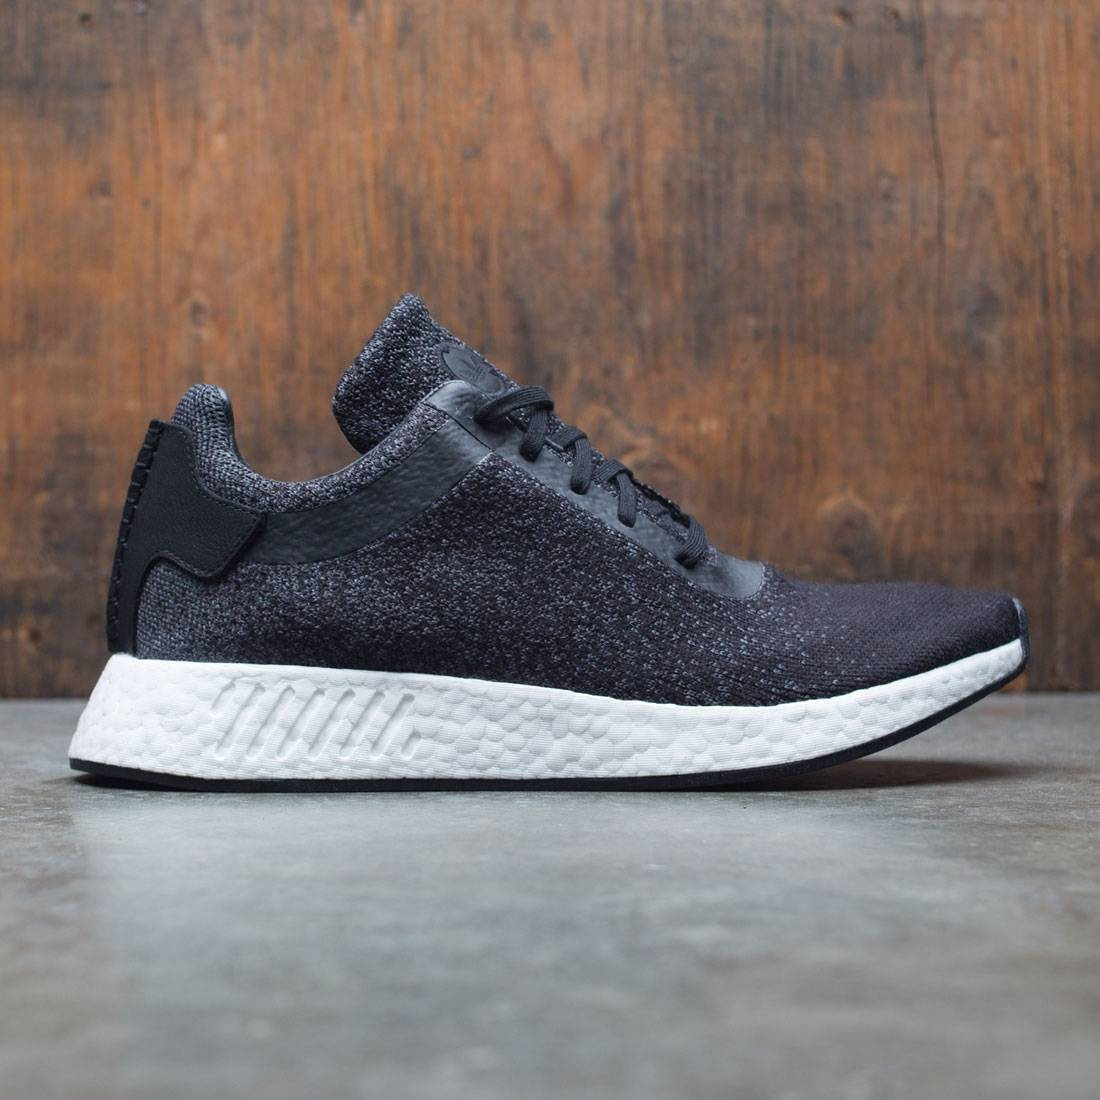 ed8416edf Adidas x Wings + Horns Men NMD R2 Primeknit black utility black grey